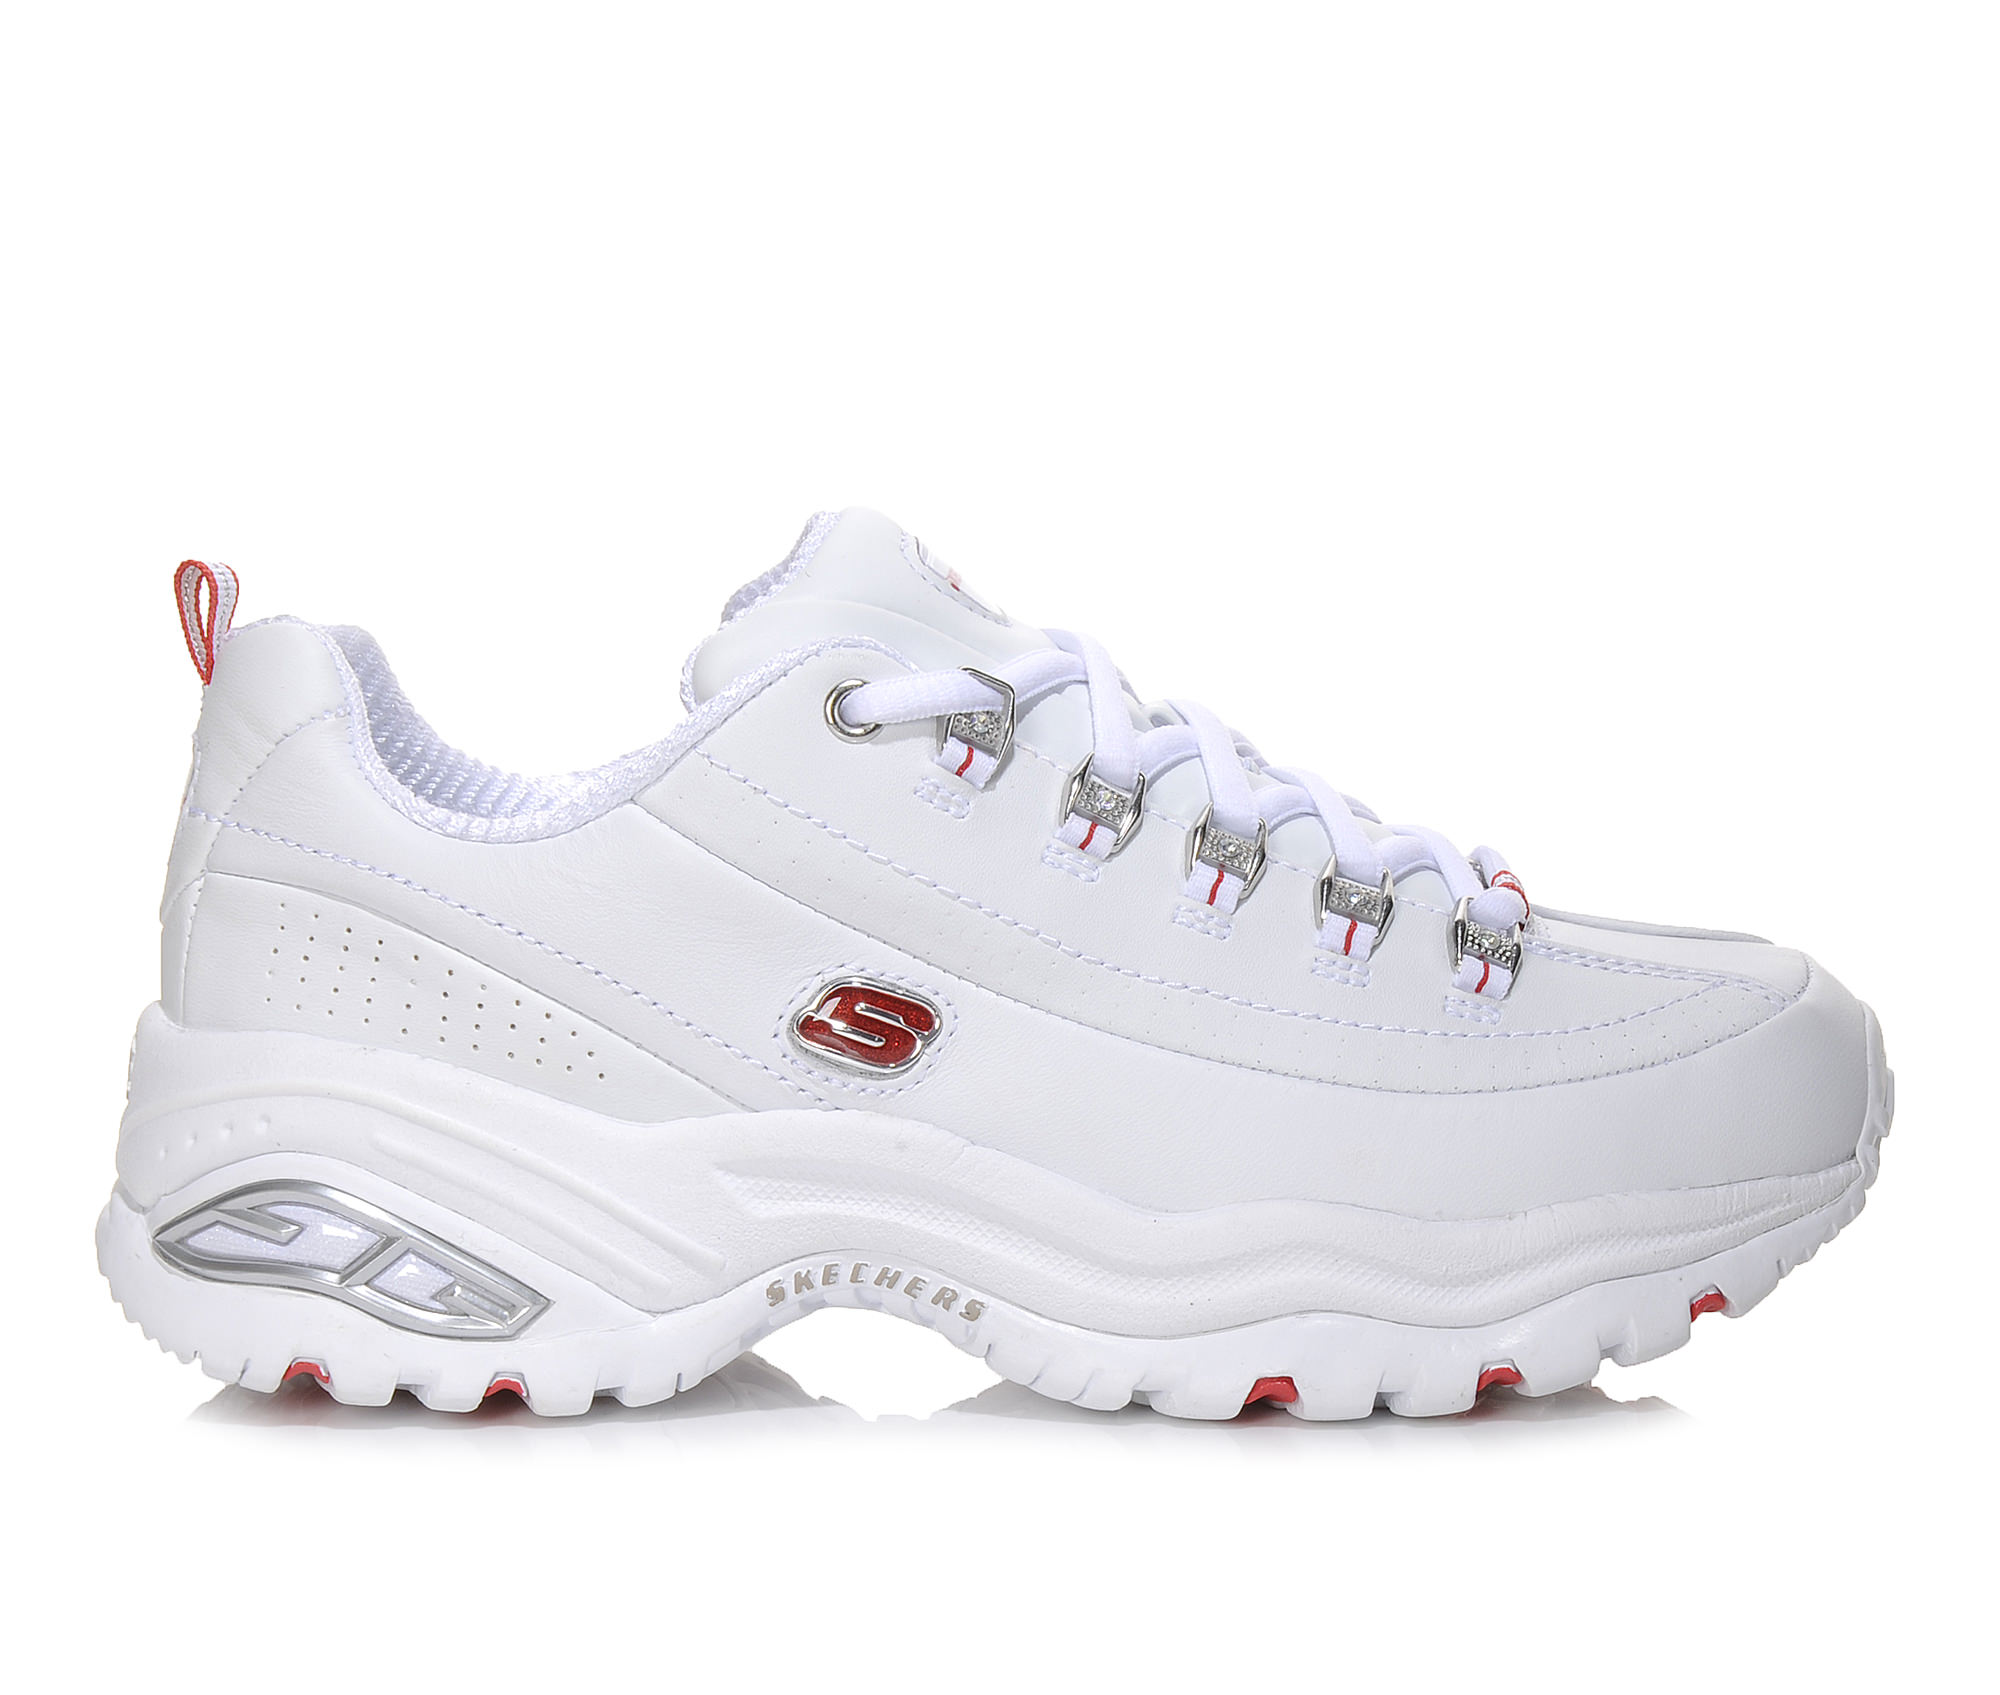 Skechers D'Lites Tiffany 11097 Women's Athletic Shoe (White Leather)